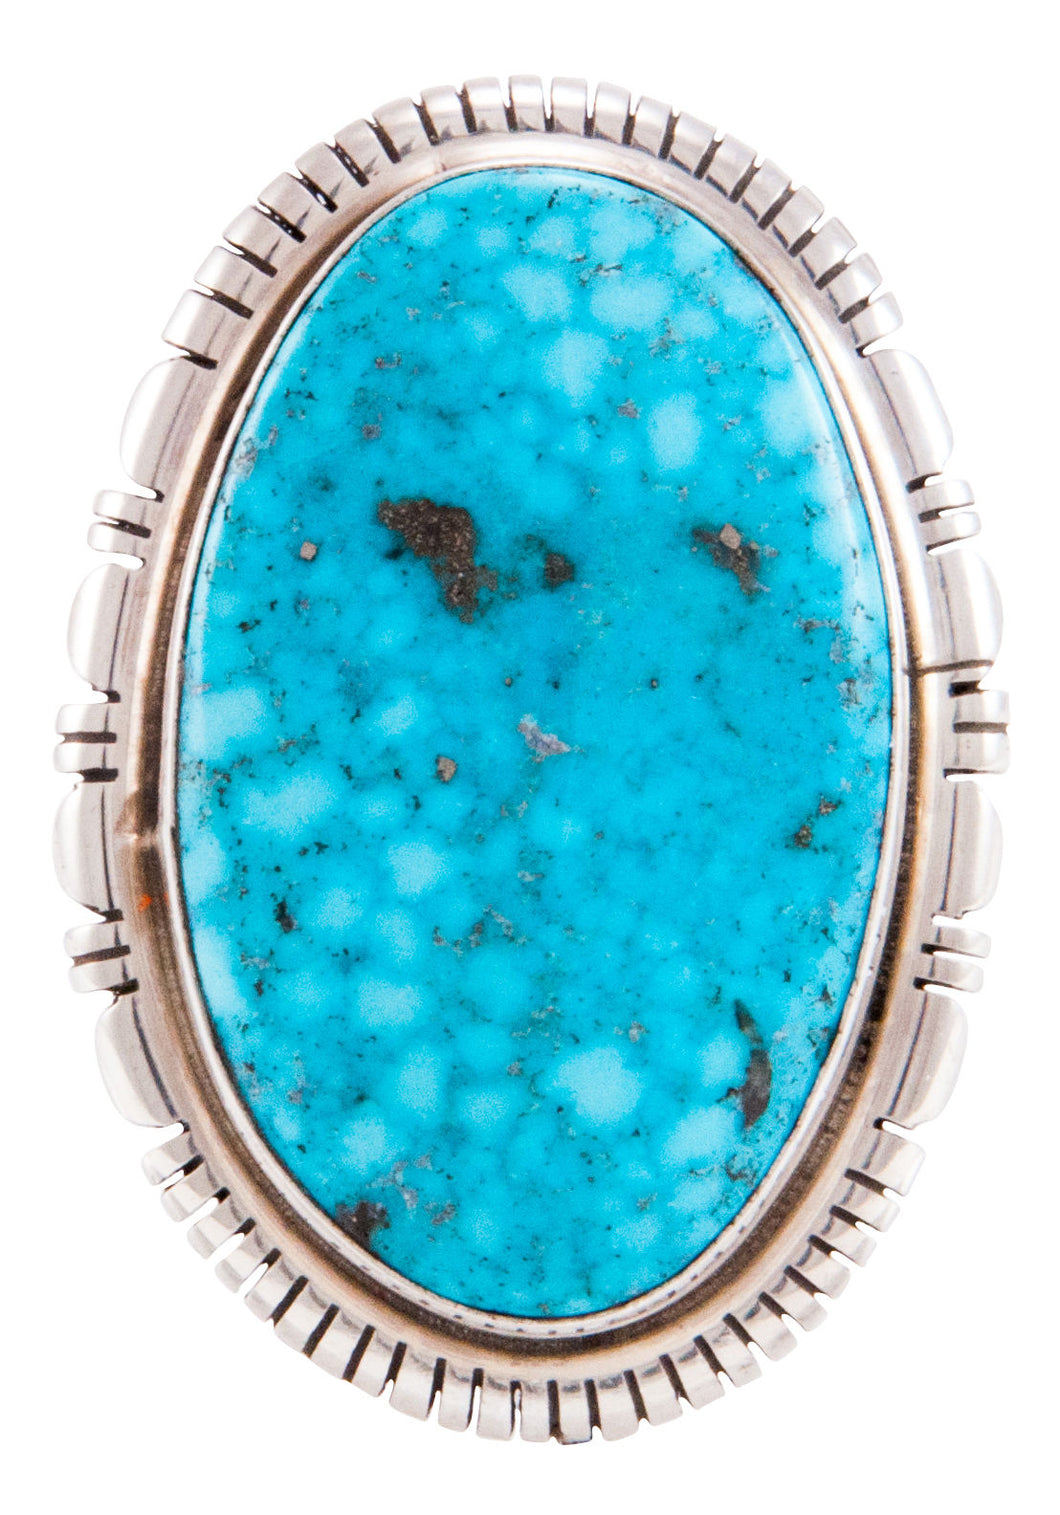 Navajo Native American Kingman Turquoise Ring Size 6 by Scott Skeets SKU232767